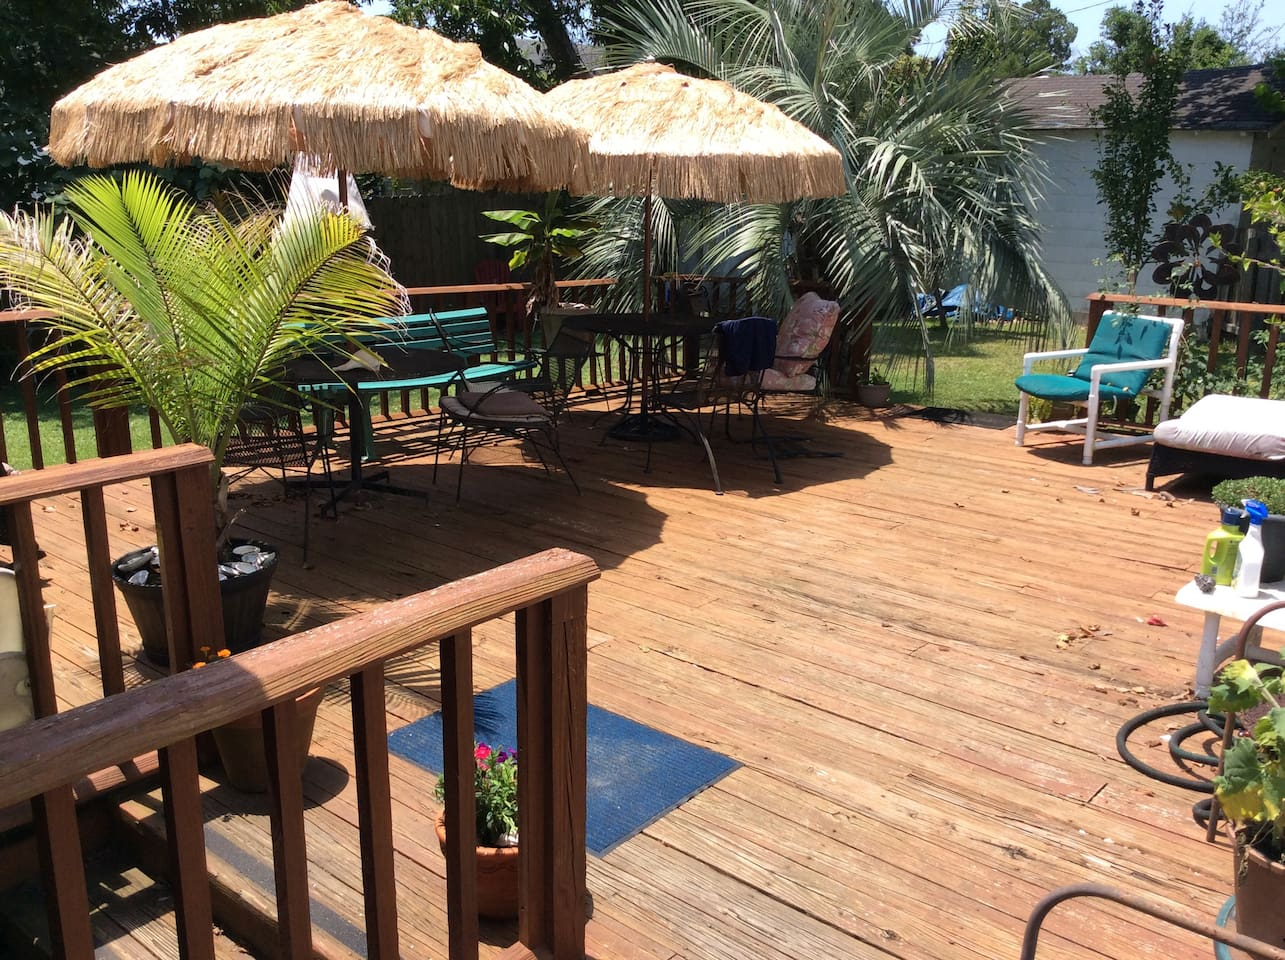 Large deck available for your relaxation.